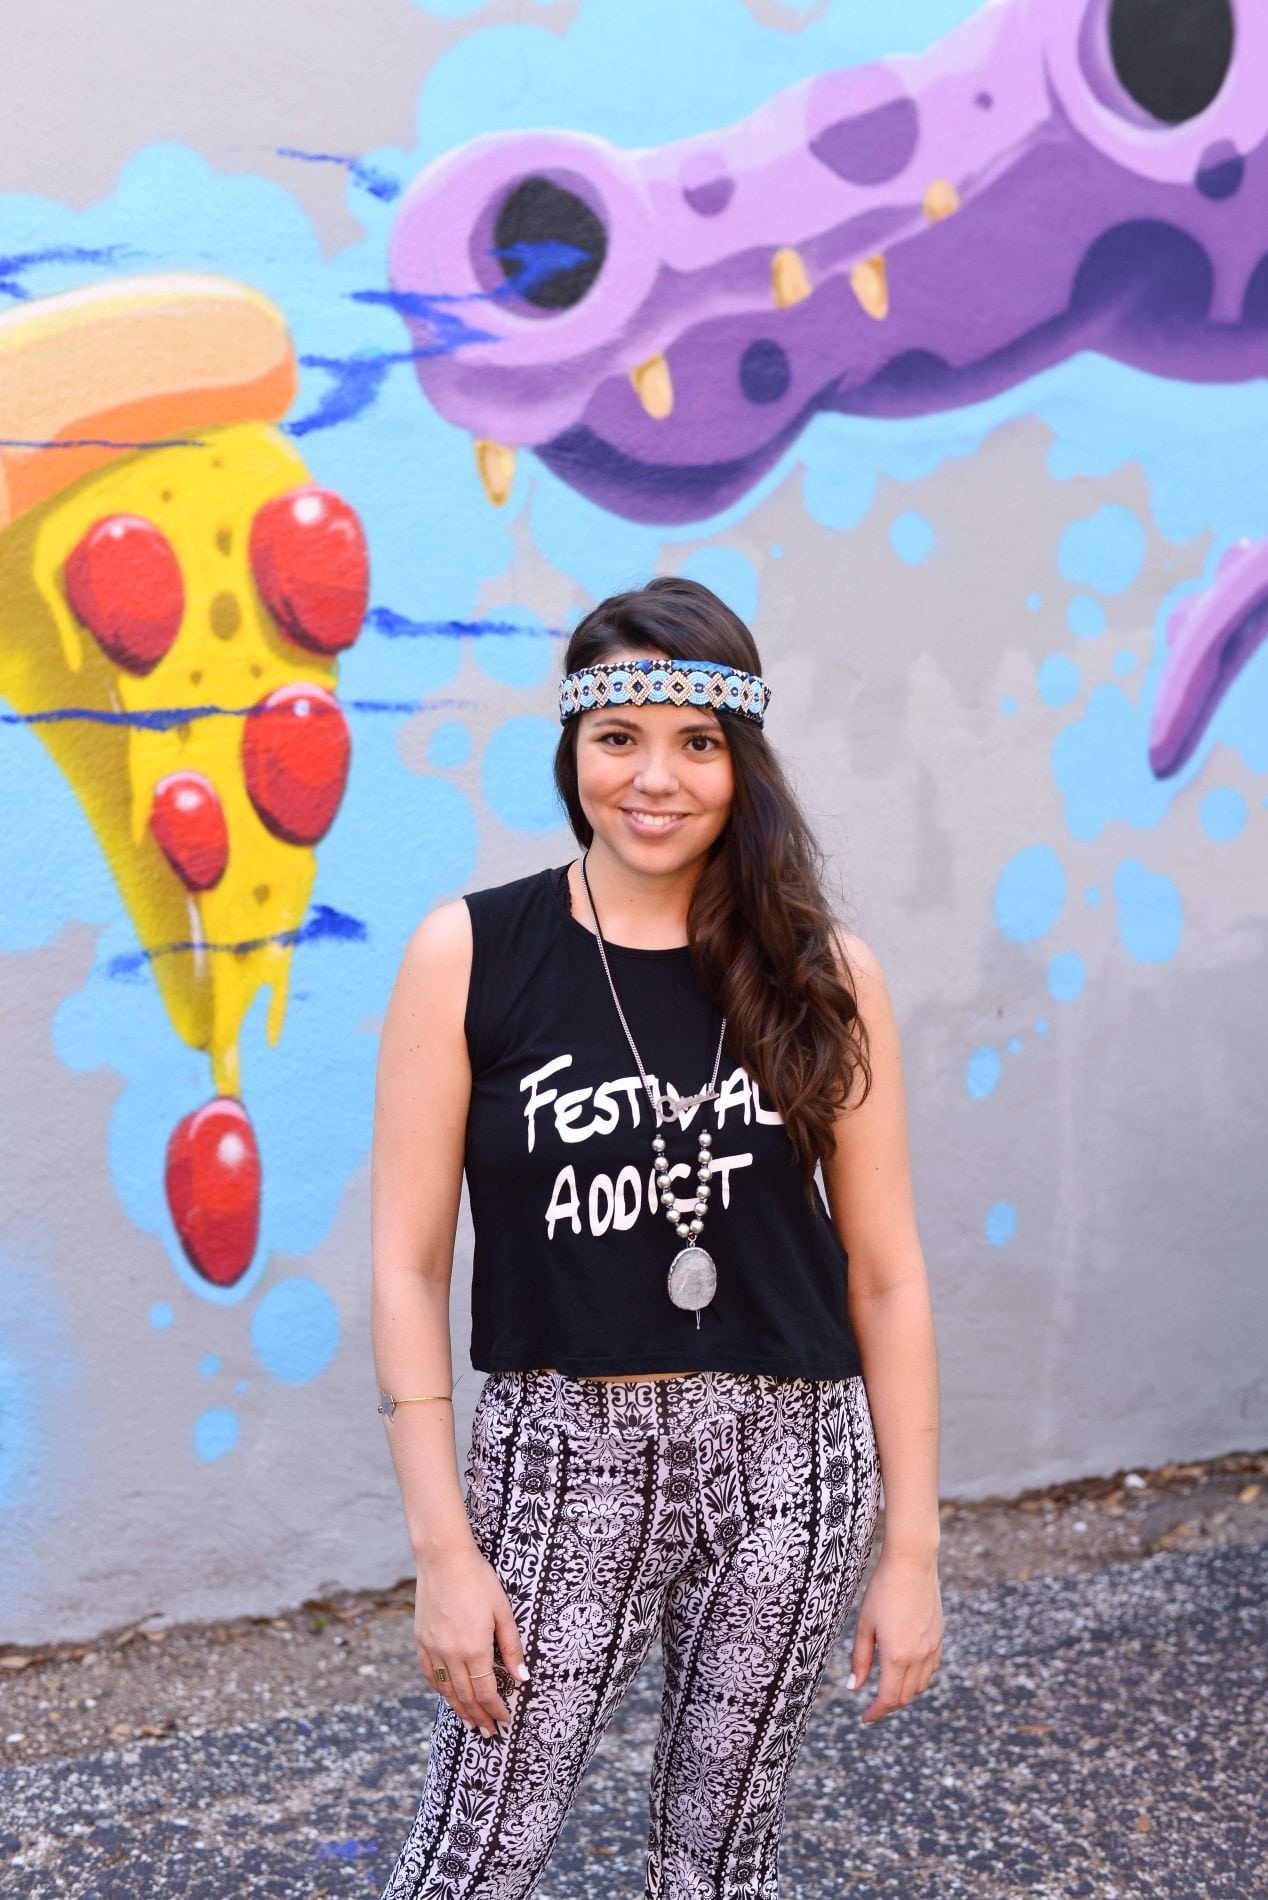 How to dress for a music fest